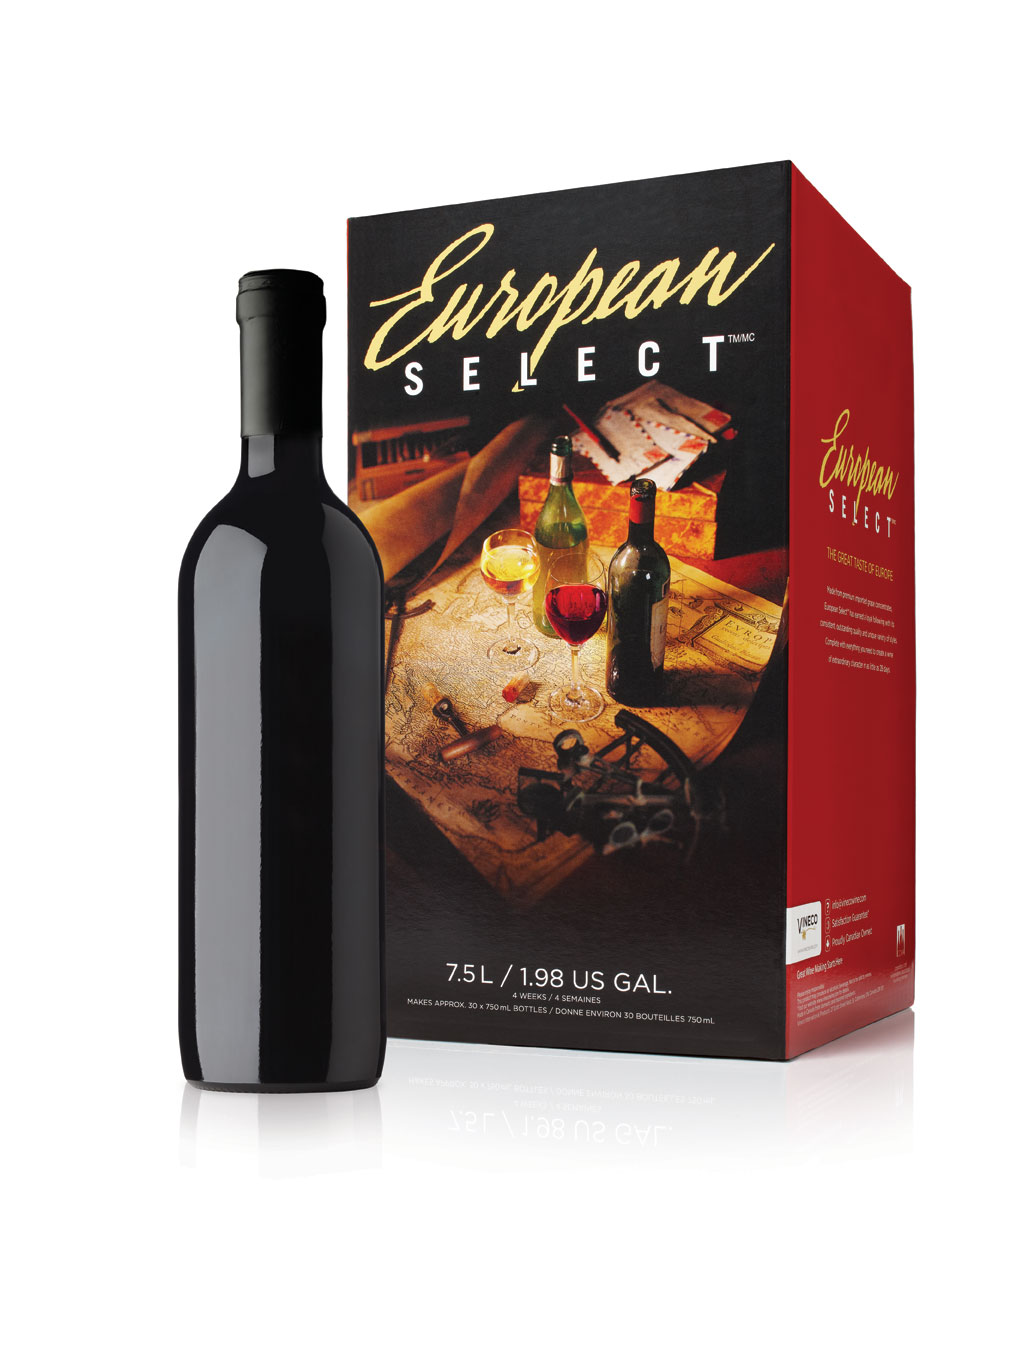 - Proud old world heritage goes into every European Select wine kit. Representing the traditions and experience cultivated over 100 years of wine making. European Select uses premium imported grape concentrates to consistently deliver the quality and bouquet expected of old world wines.